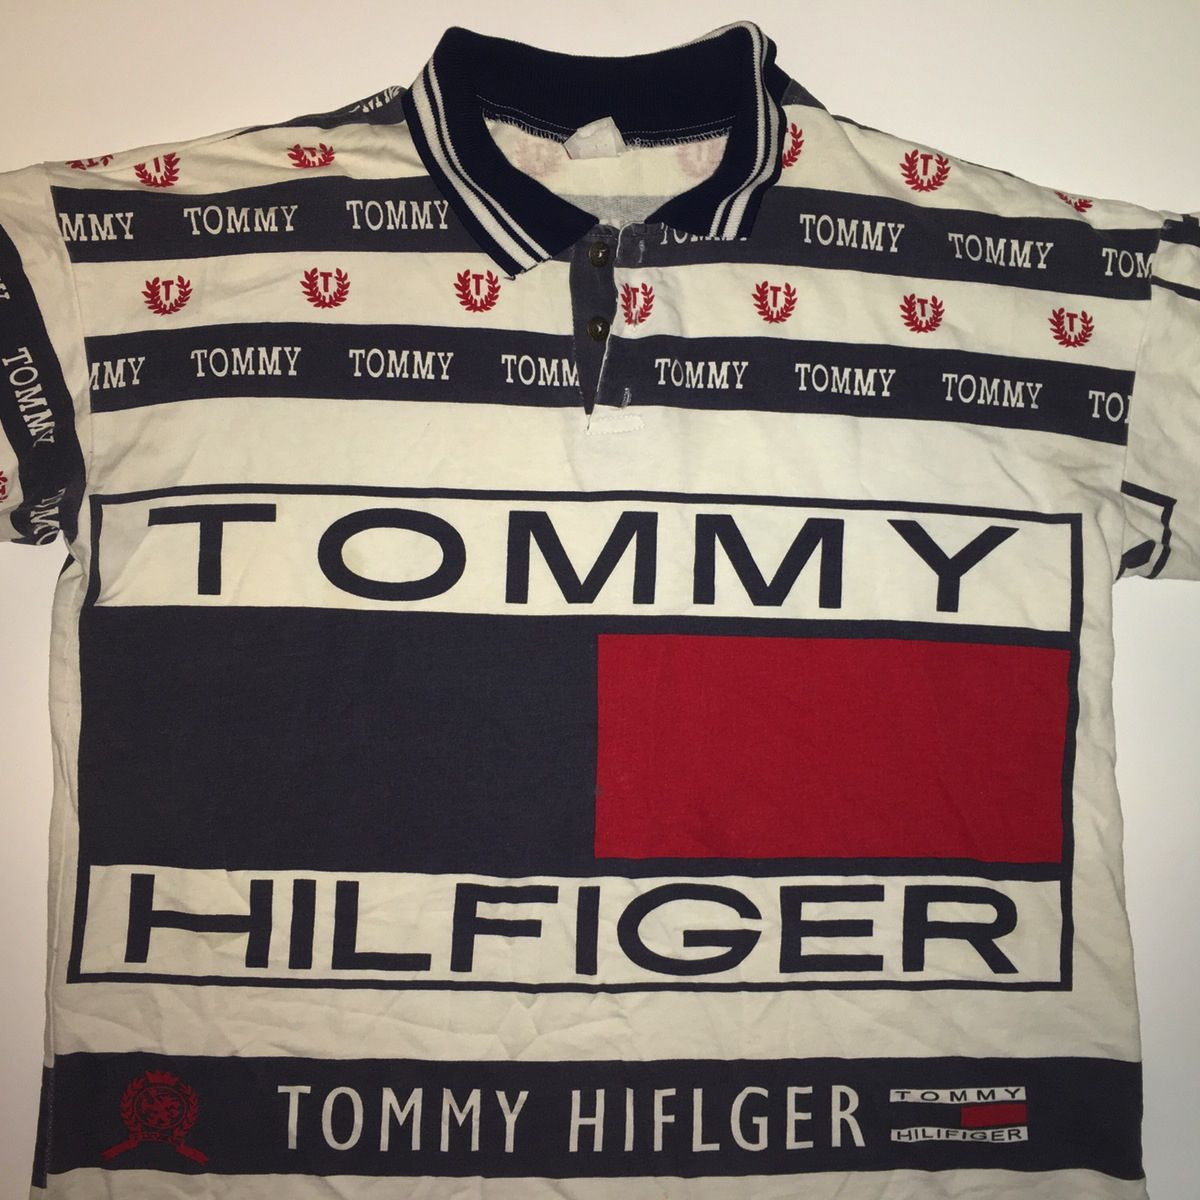 ee7d76287 Bootleg Tommy Hilfiger polo shirt. Find this Pin and more on 80s 90s  vintage clothing ...